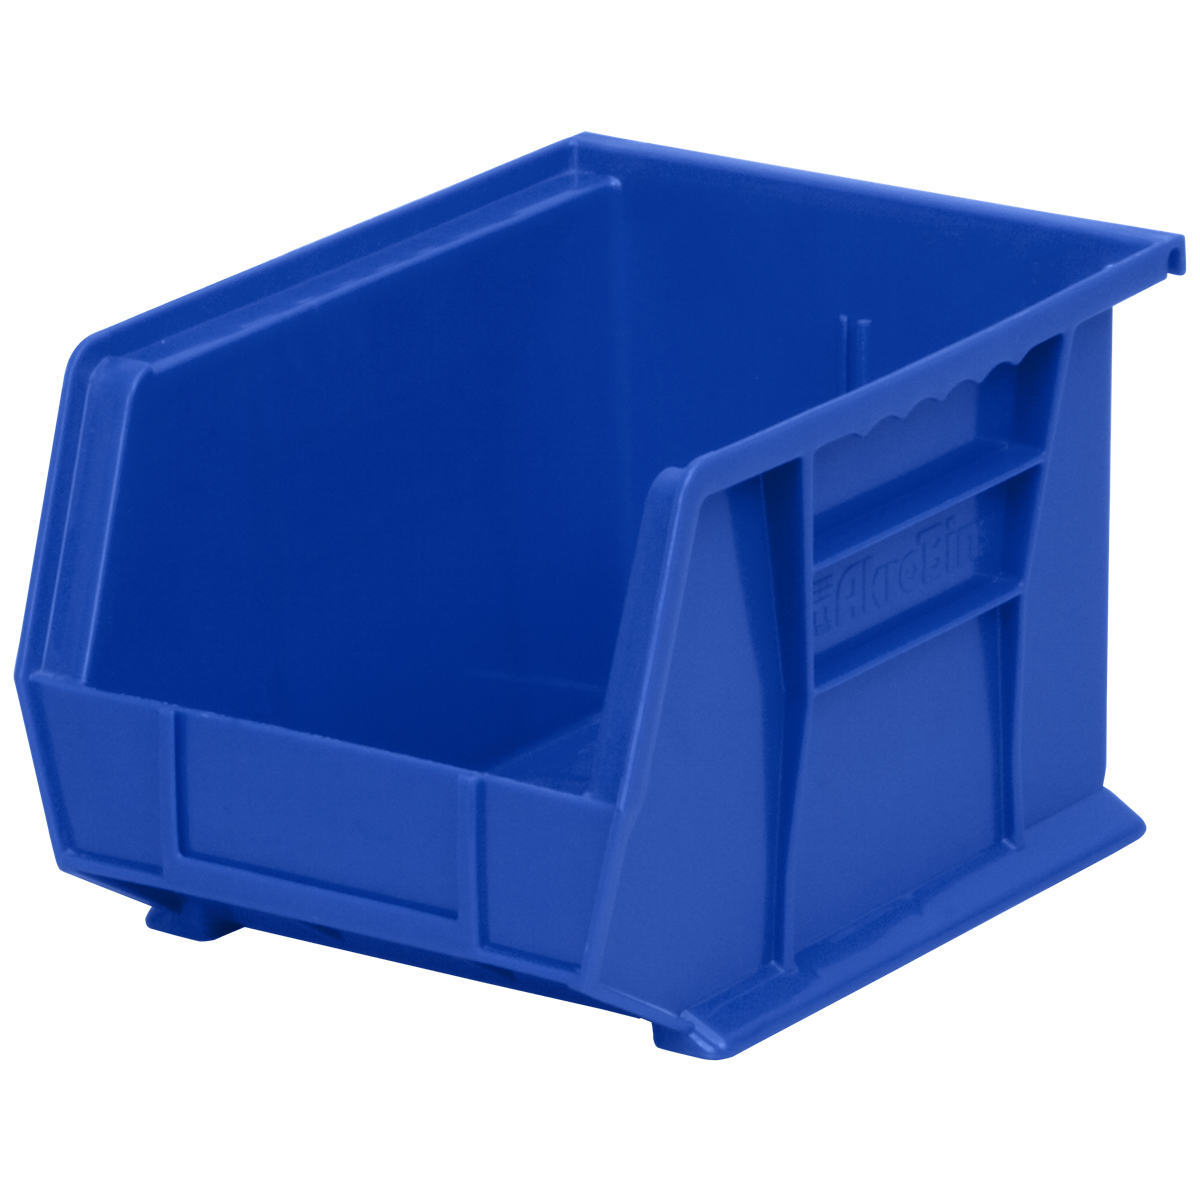 AkroBin 10-3/4 x 8-1/4 x 7, Blue (30239BLUE).  This item sold in carton quantities of 6.